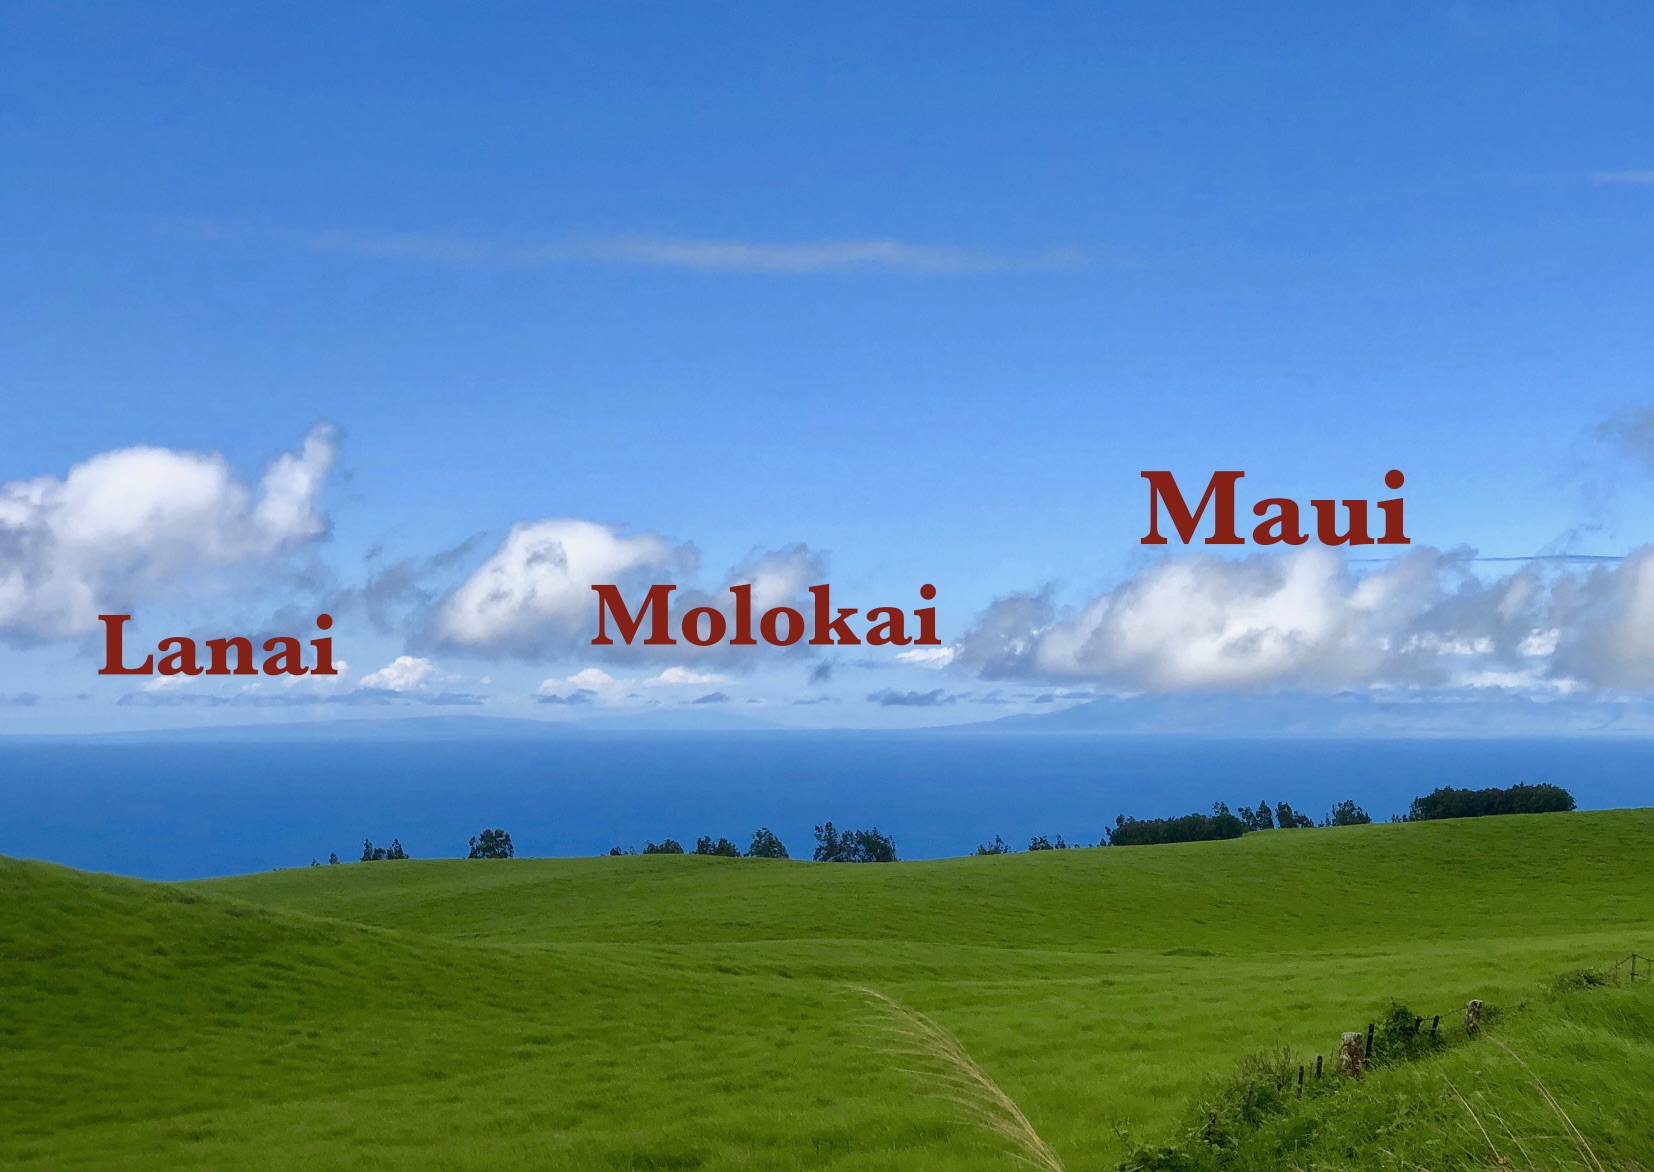 Hawaii vog forecast - clear!